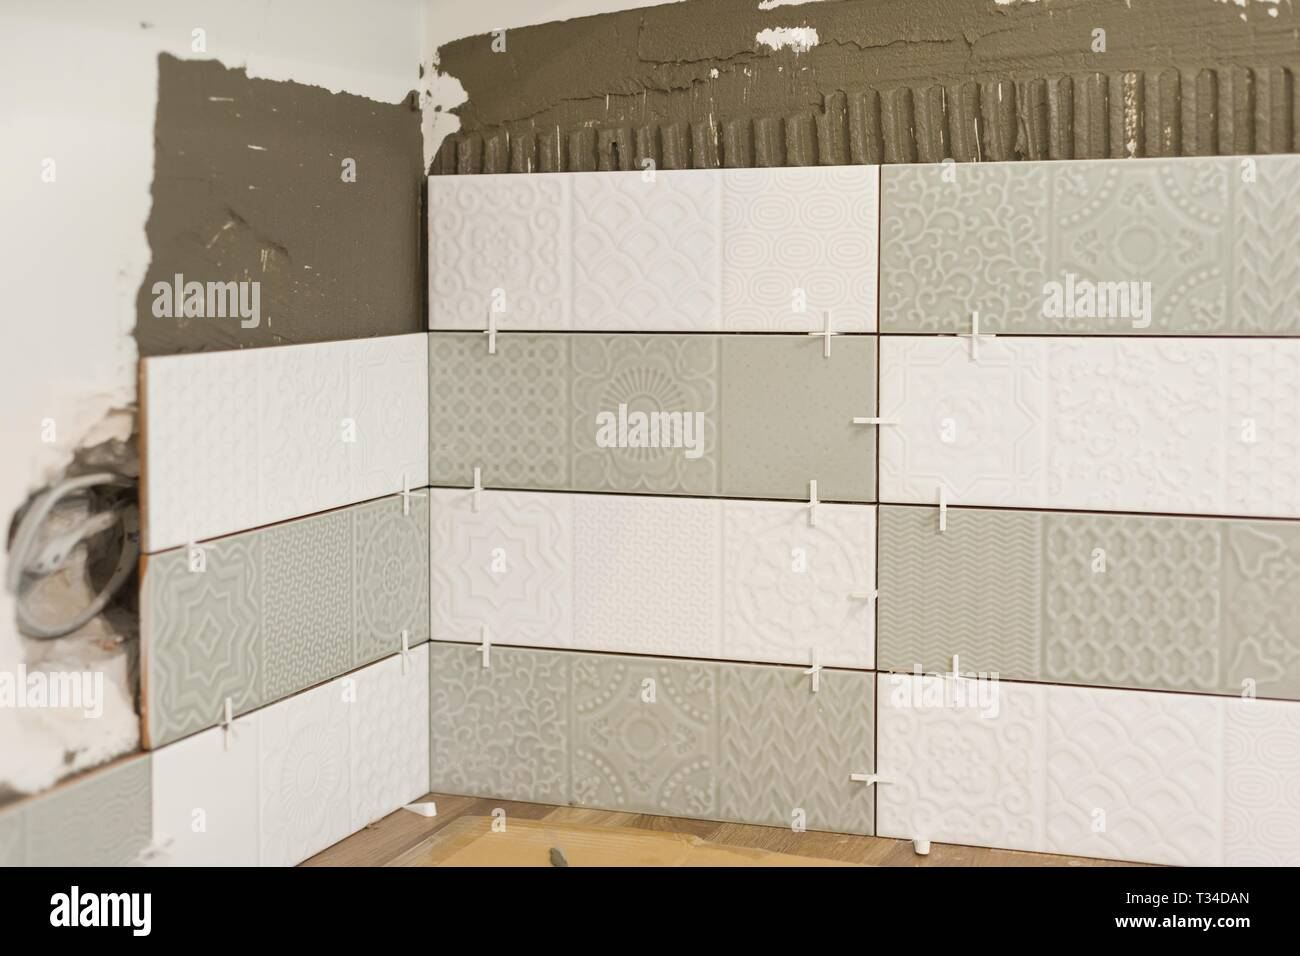 Process Of Laying Ceramic Tiles Construction And Repair In The Kitchen Tiles Stock Photo Alamy